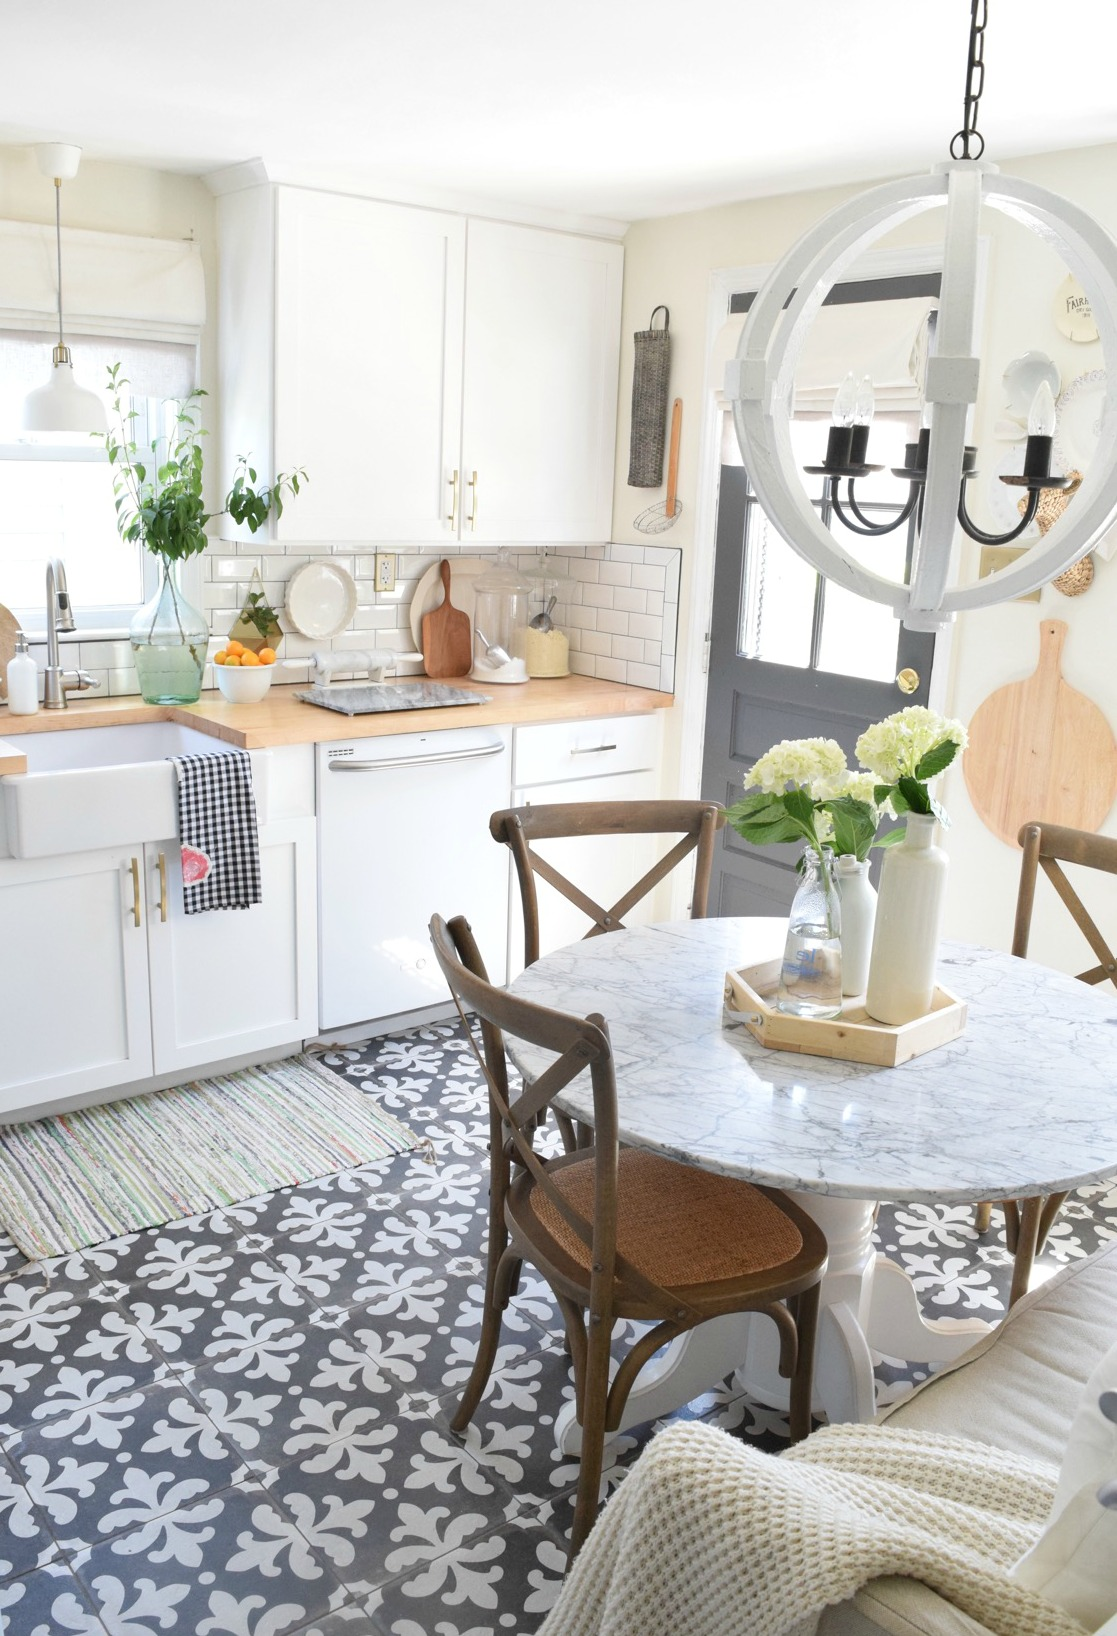 Farm House Kitchens: Farmhouse Kitchens, Blogger's Kitchens